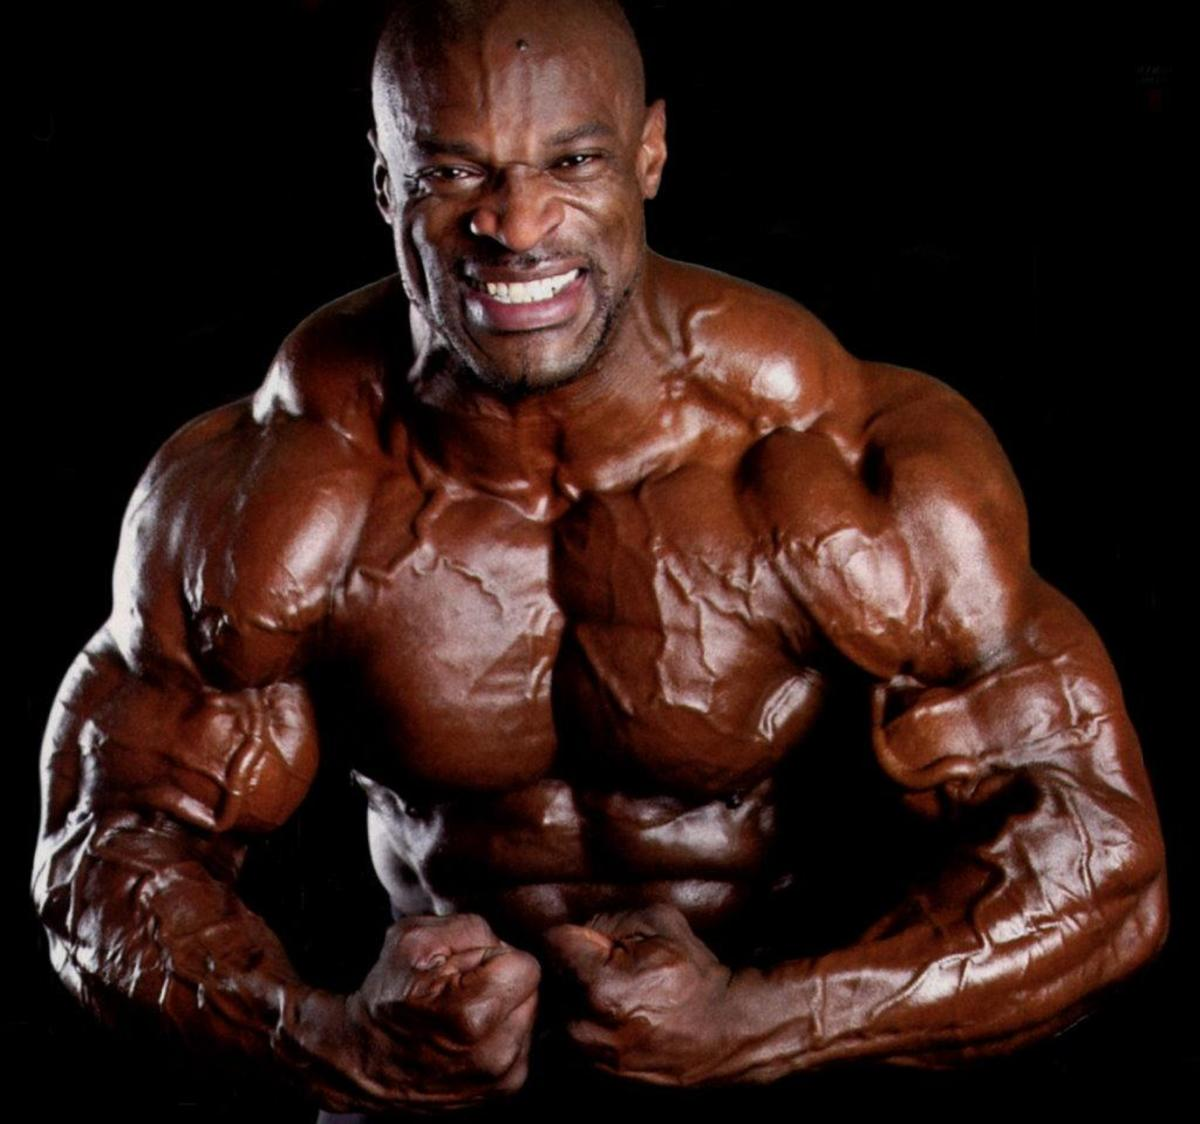 Are You Not Muscular Or Big Enough? Muscle Dismorphia (Bigorexia)